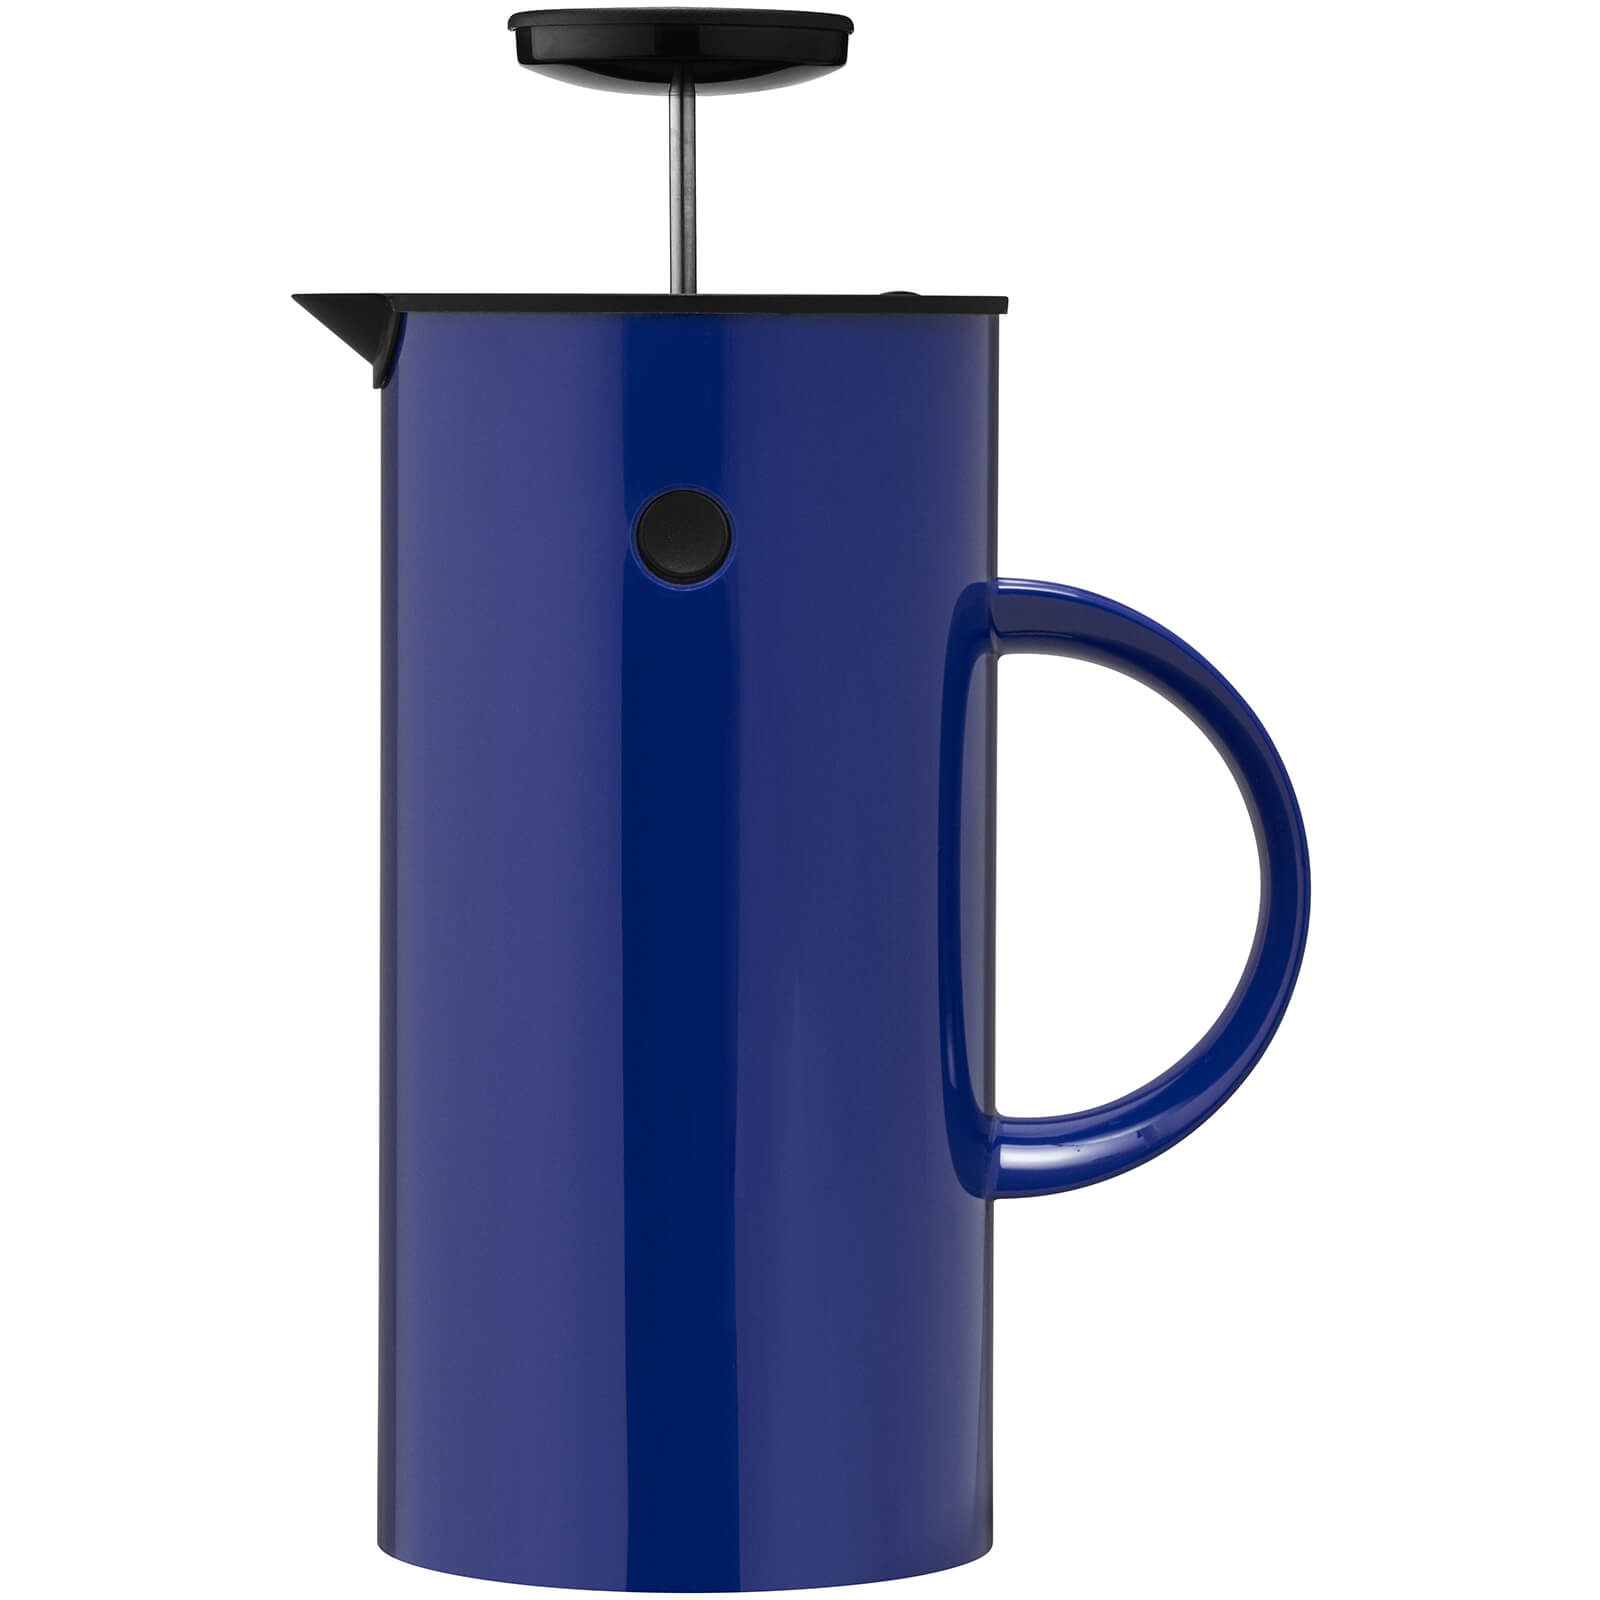 Stelton EM French Press Coffee Maker - 1L - Ultramarine